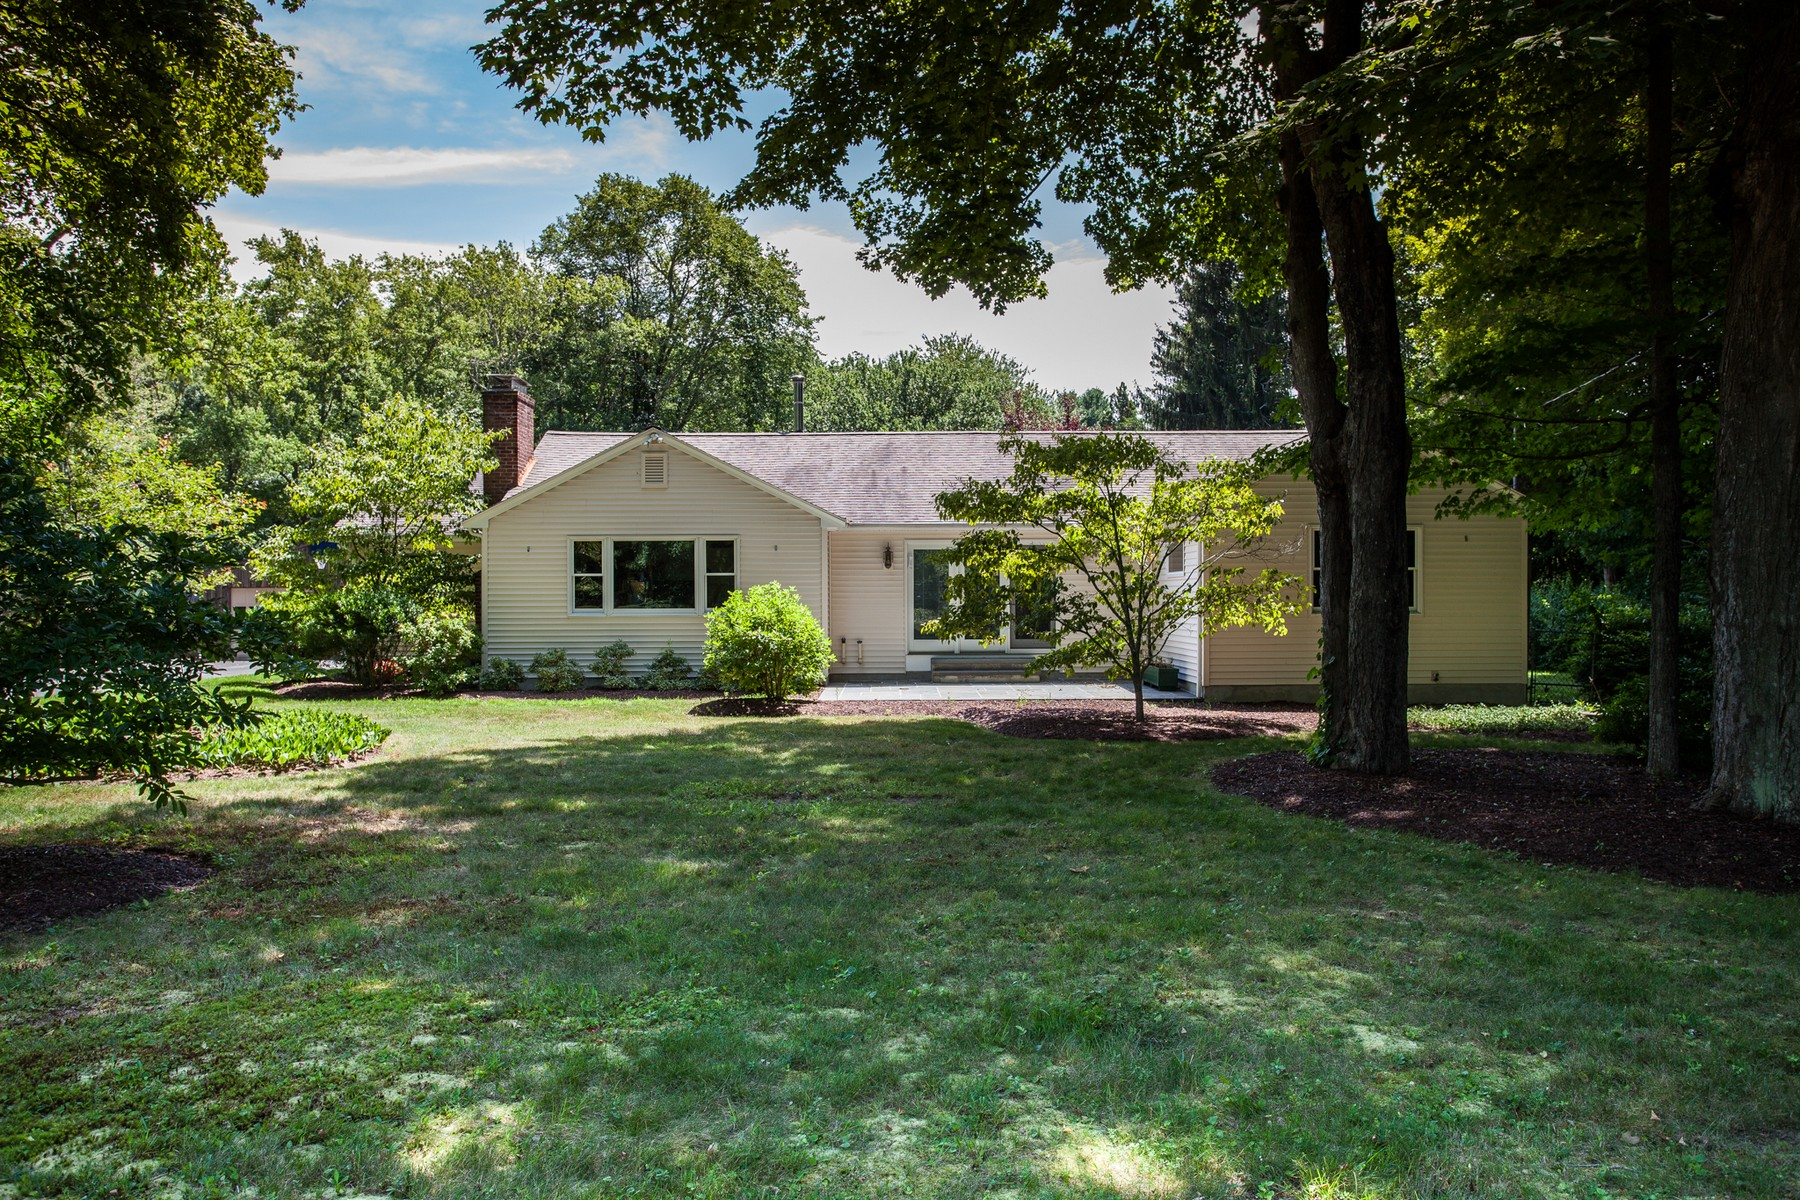 Single Family Home for Sale at Updated Ranch, Picturesque Setting 61 Sill Ln Old Lyme, Connecticut, 06371 United States